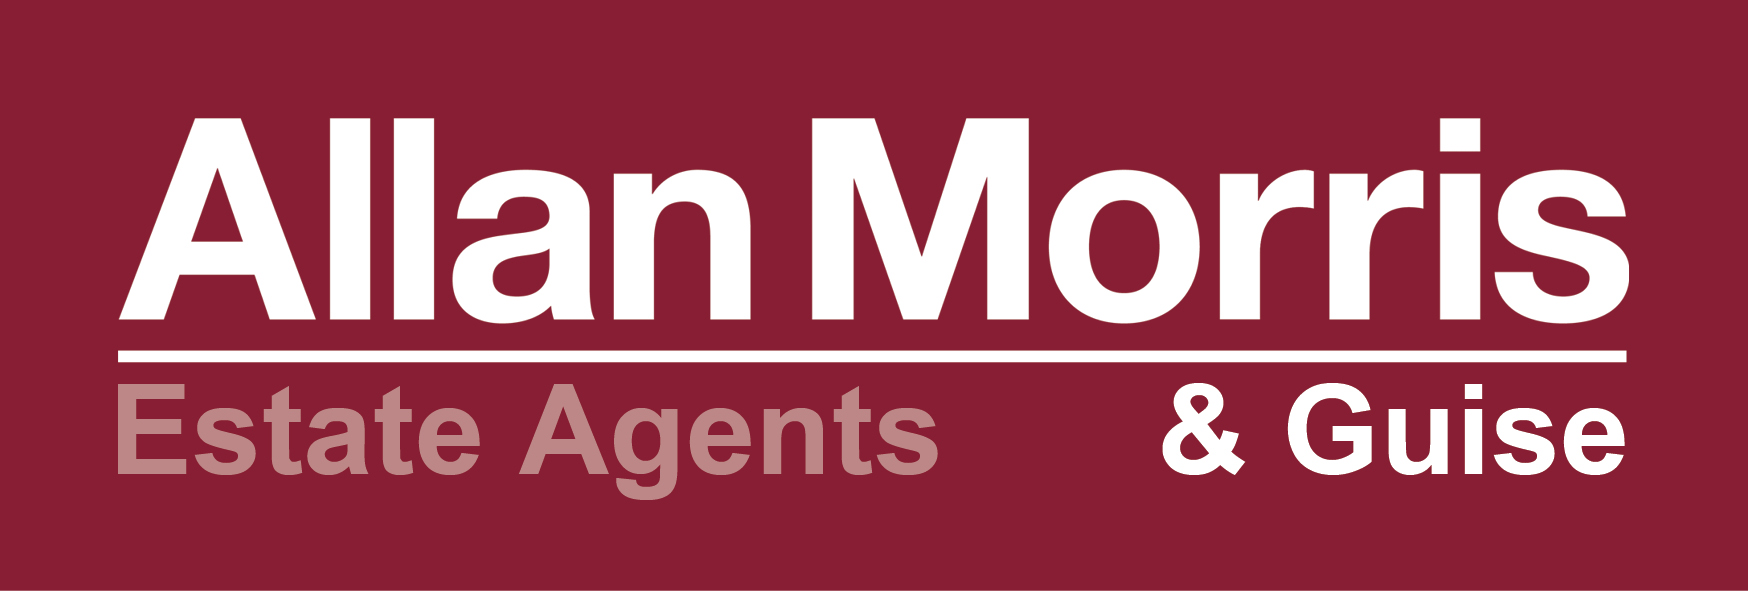 Allan Morris & Guise Estate Agents